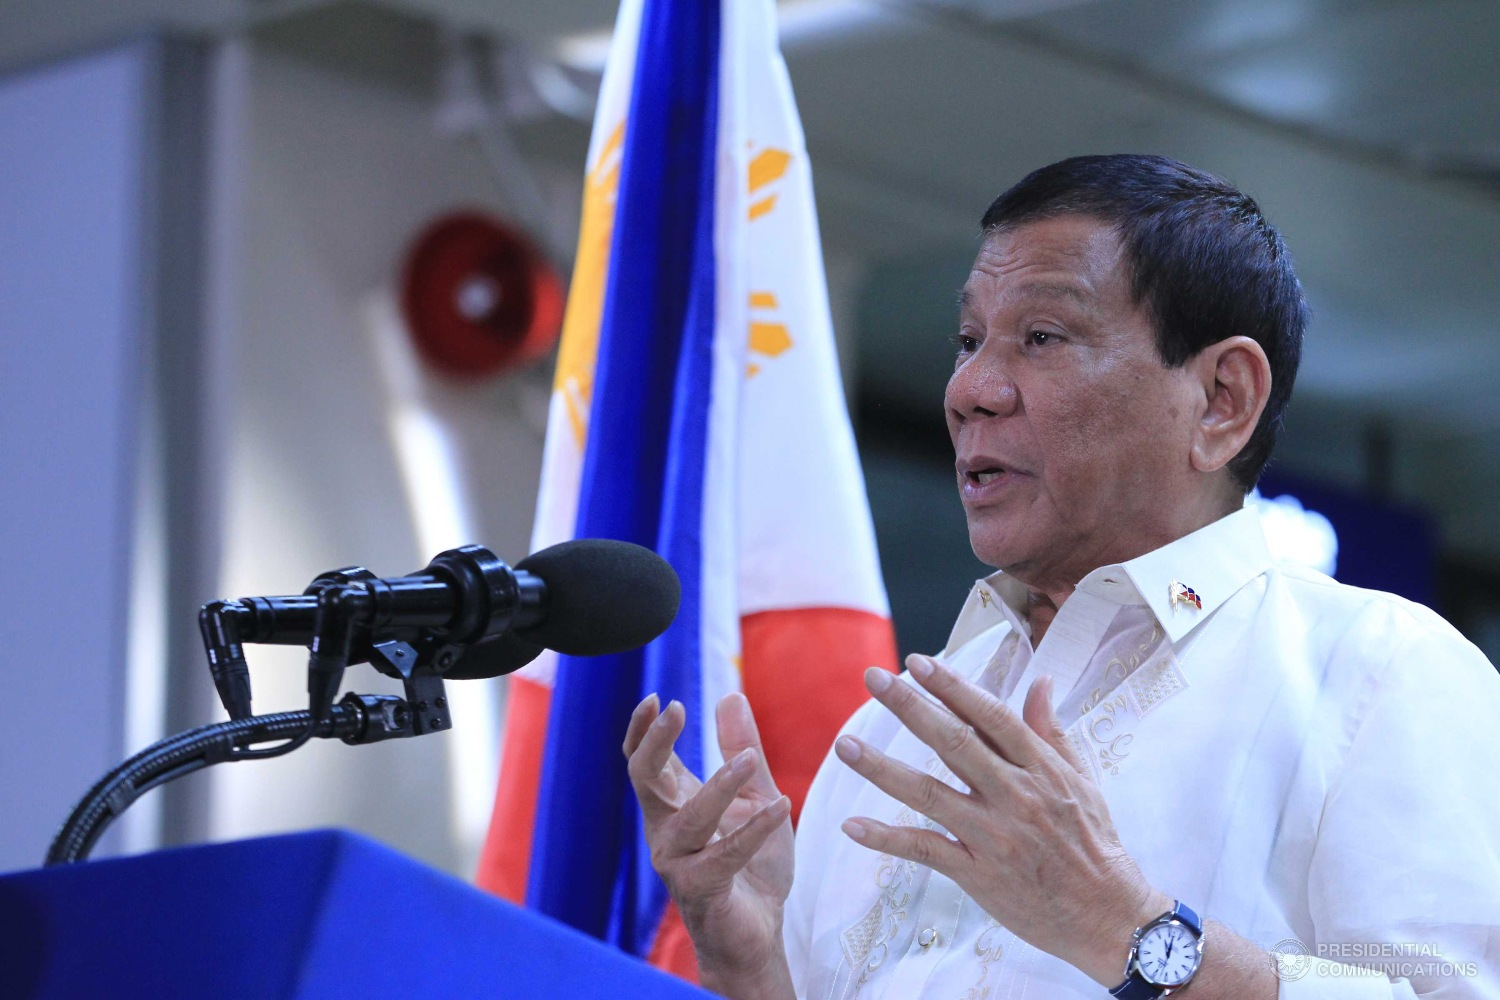 """I have a one million offer per person ako. Tip lang ibigay mo sa pulis pati military, no questions asked, do not even give your name, sabi mo lang kung saan sila at gobyerno na ang bahala,"" President Duterte told reporters in a chance interview in Tagbilaran, Bohol following a security briefing on the upcoming Association of Southeast Asian Nations (ASEAN) Summit. (Photo: ACE MORANDANTE/Presidential Photo)"